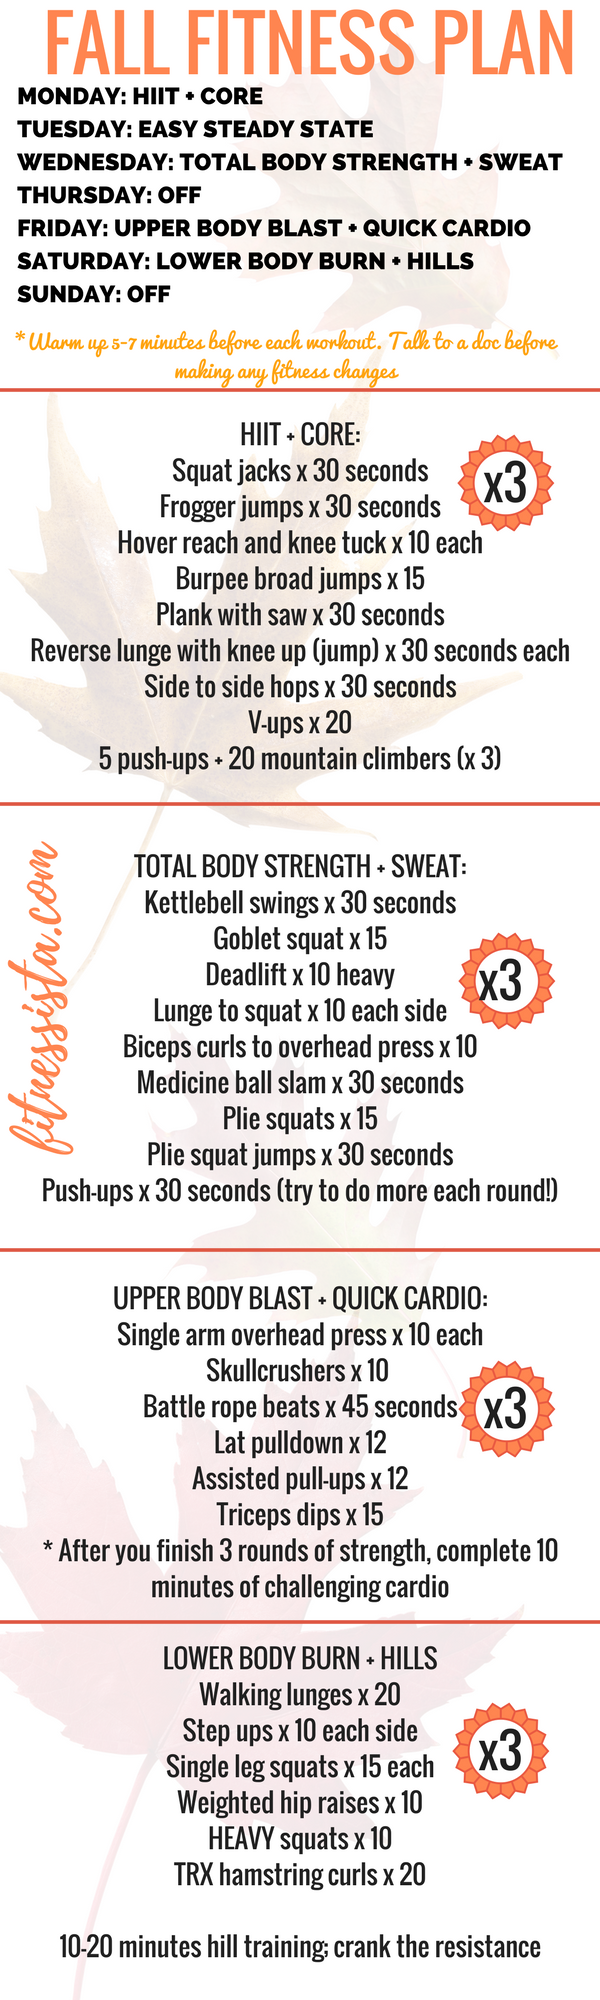 A full fall fitness plan! Perfect for the next time you don't know what to do at the gym, or are looking for a plan to change up your routine. Cardio, strength, HIIT and rest. fitnessista.com